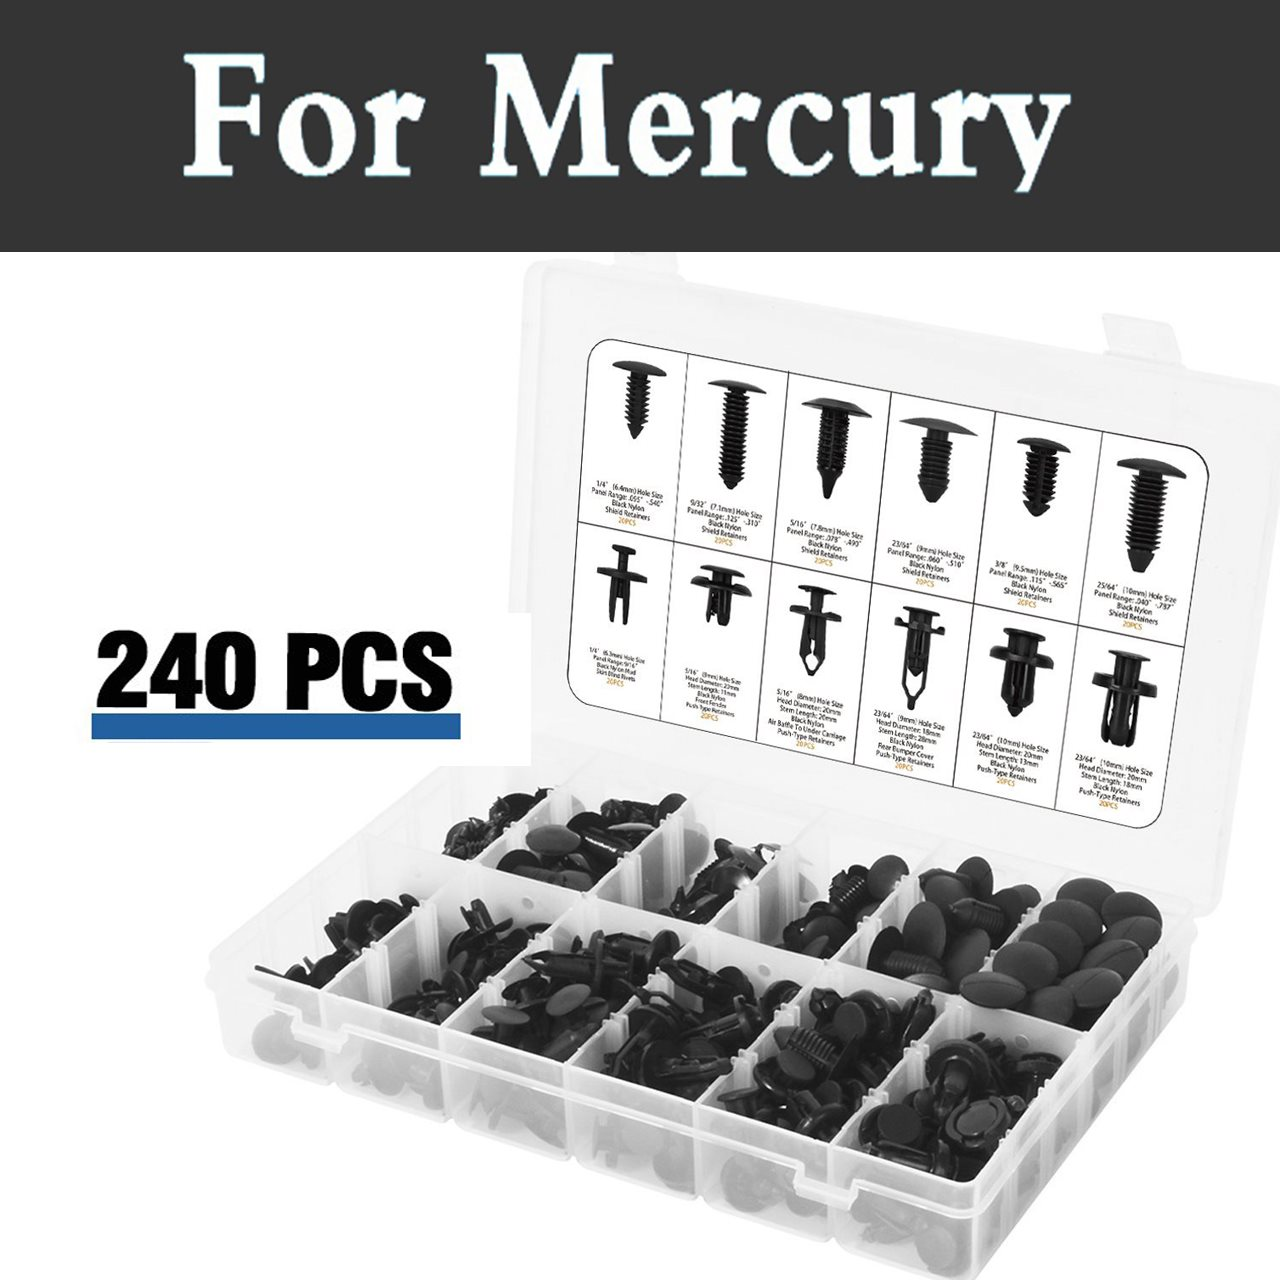 240pcs Assortment Push Pin Rivet Set Push Set In Case Fits Car Rivets For Mercury Grand Marquis Mariner Milan Montego